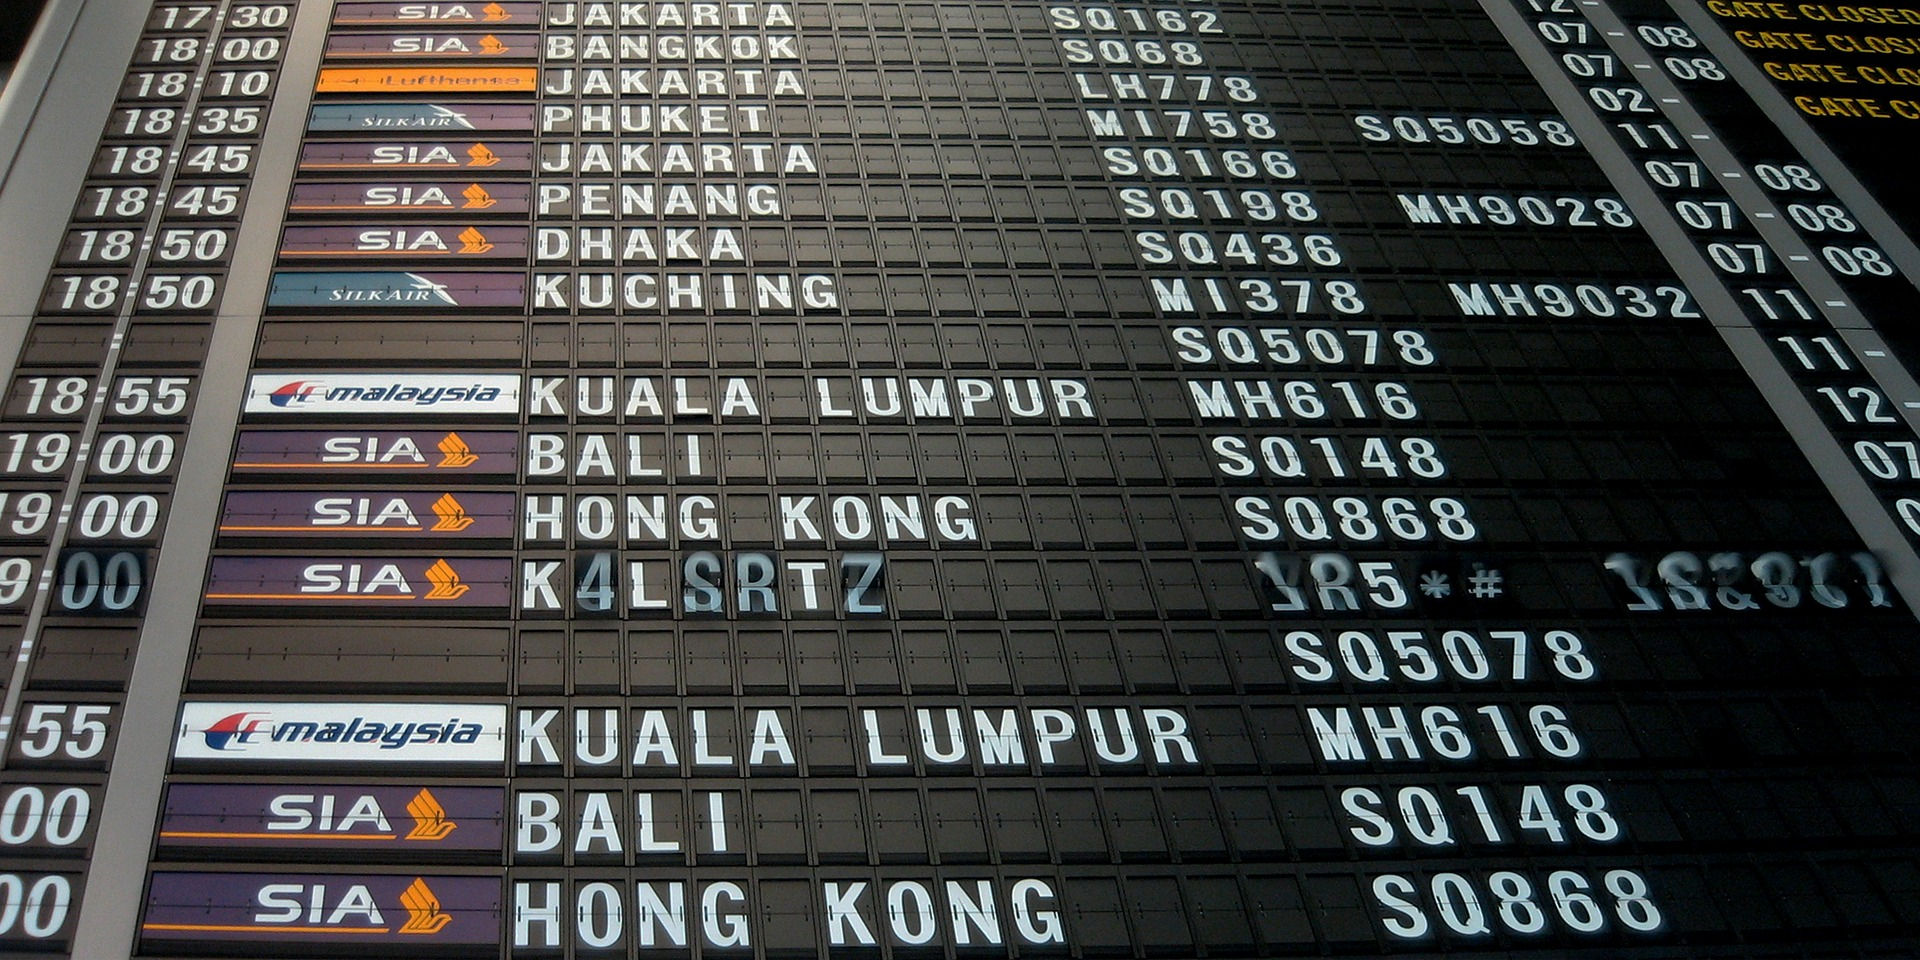 Airport Flight Board